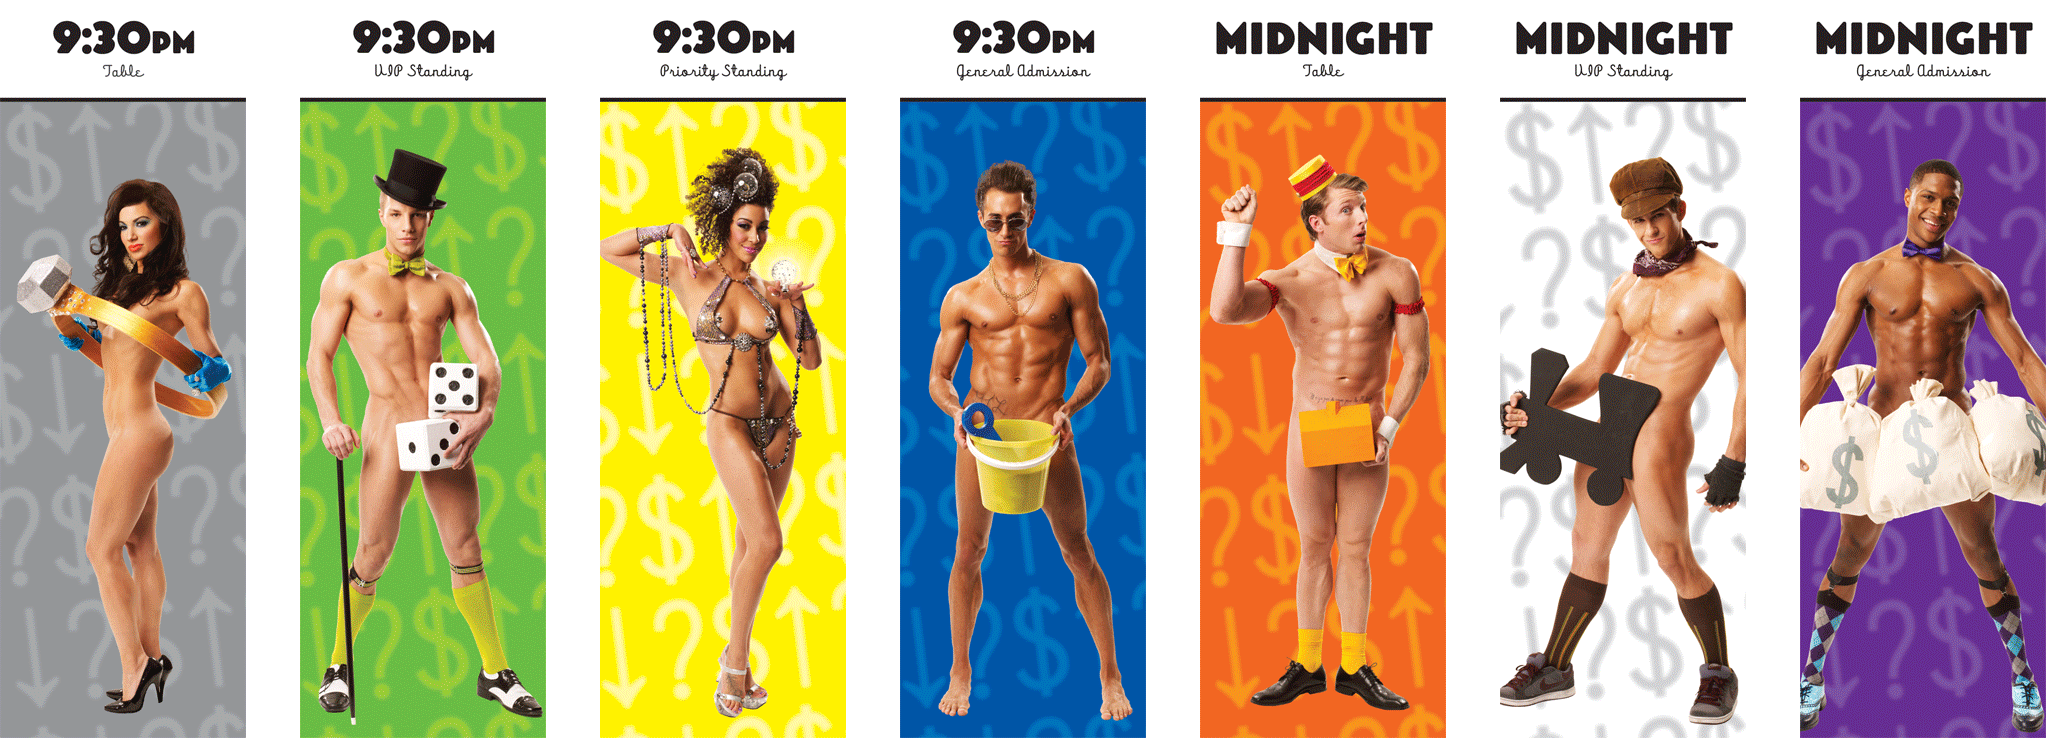 Broadway Bares: Stripopoly Tickets - Front